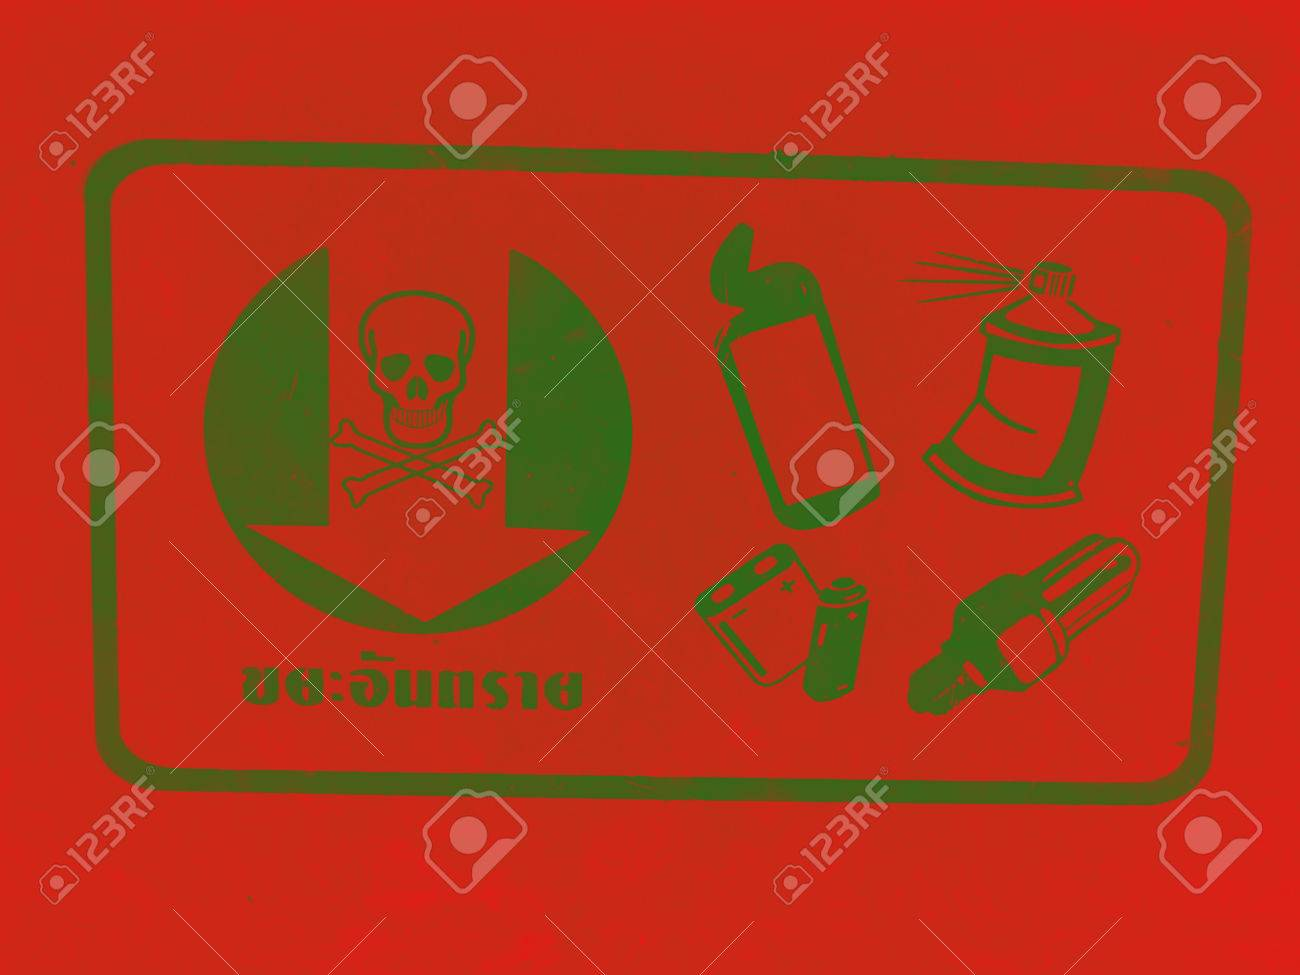 Label hazardous waste Stock Photo - 24203151